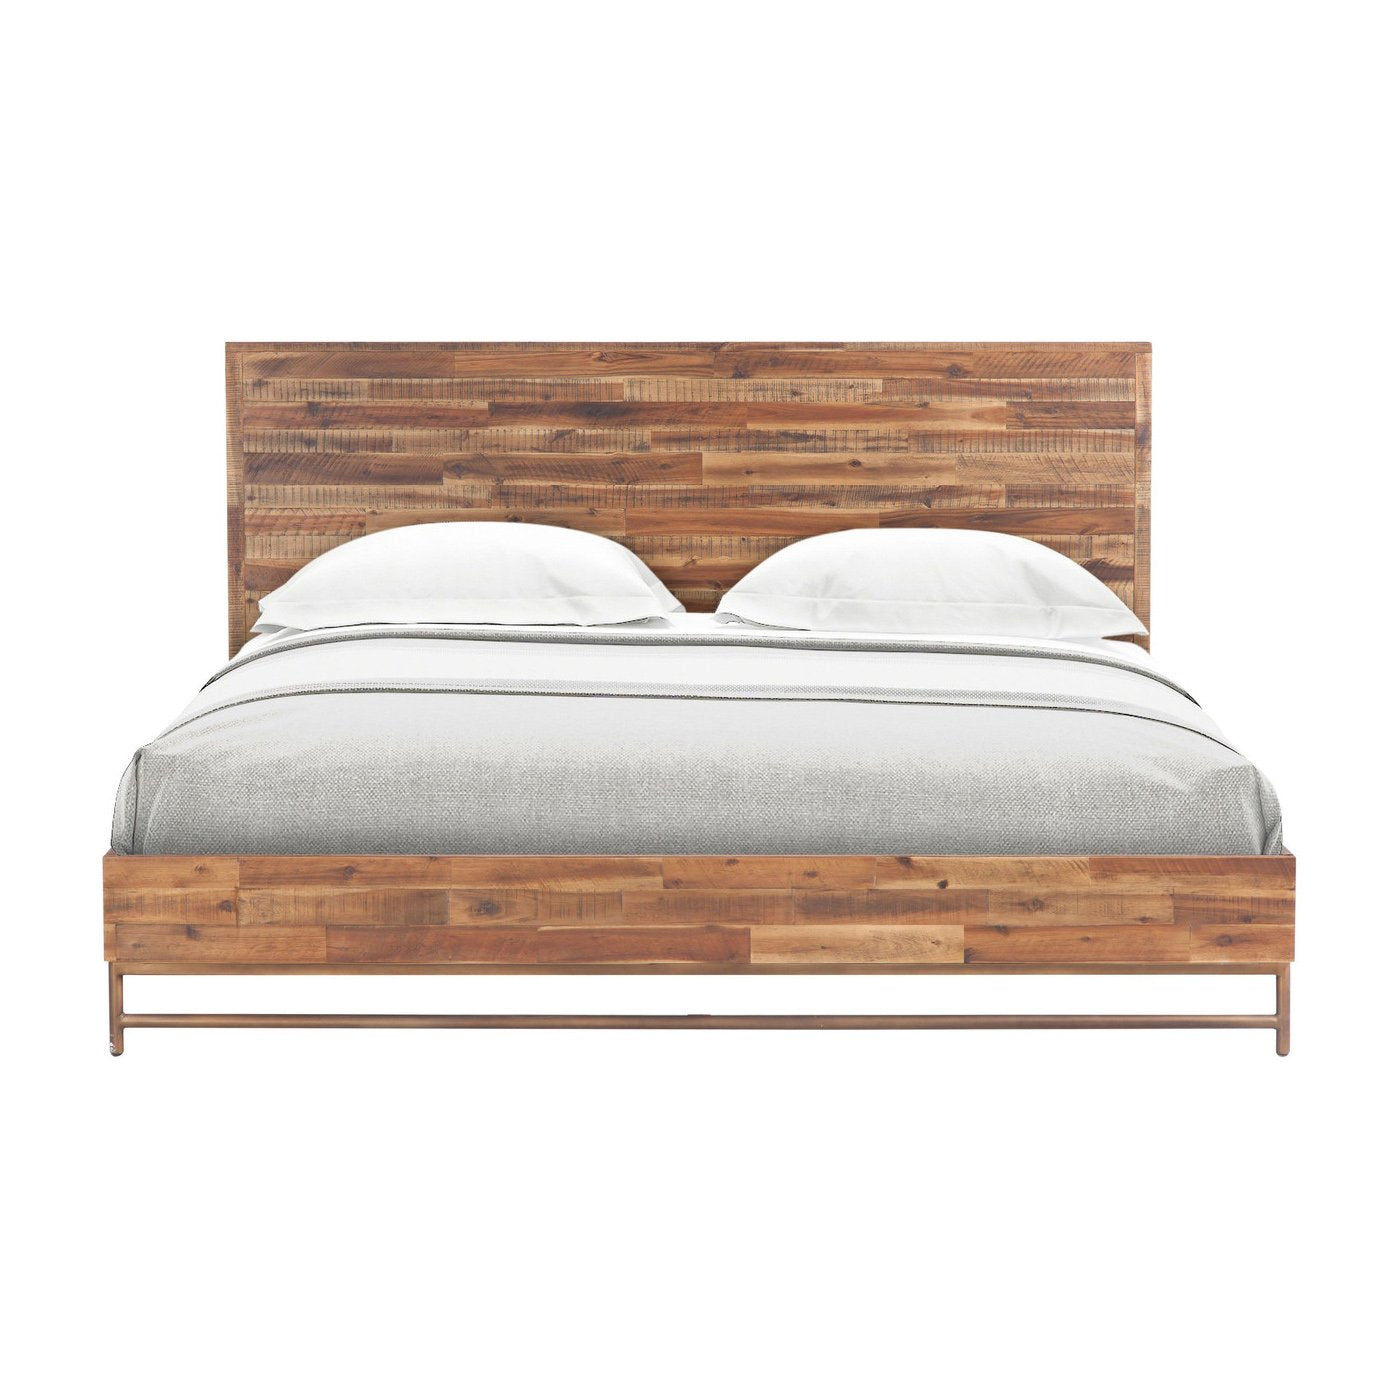 Tov-Bushwick Wooden King Bed-Beds-MODTEMPO